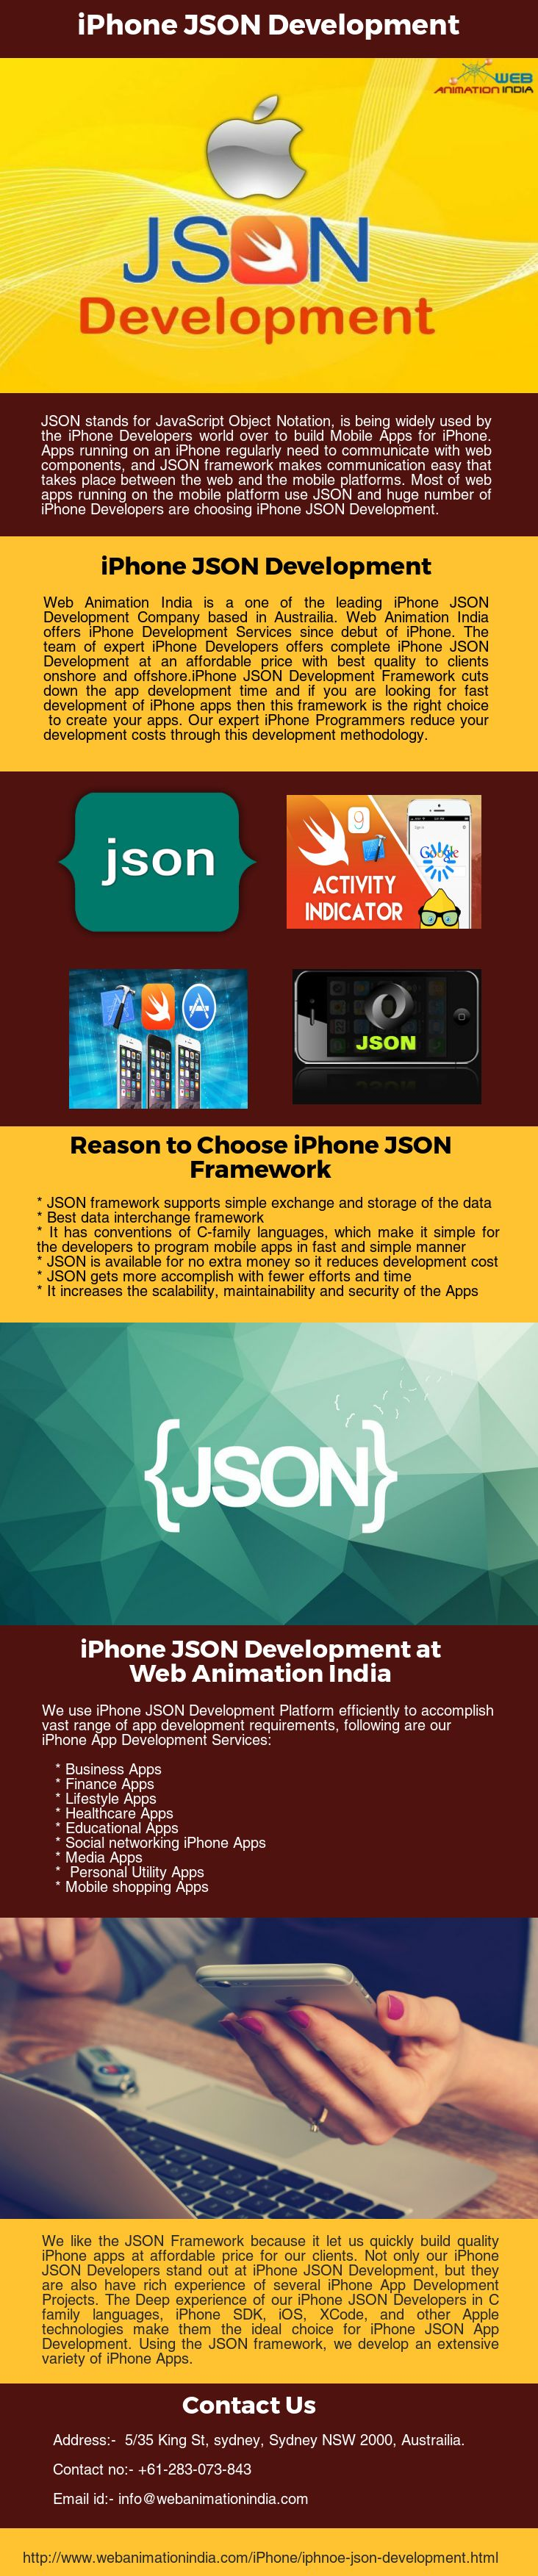 we offers iphone development services complete iphone json development at an